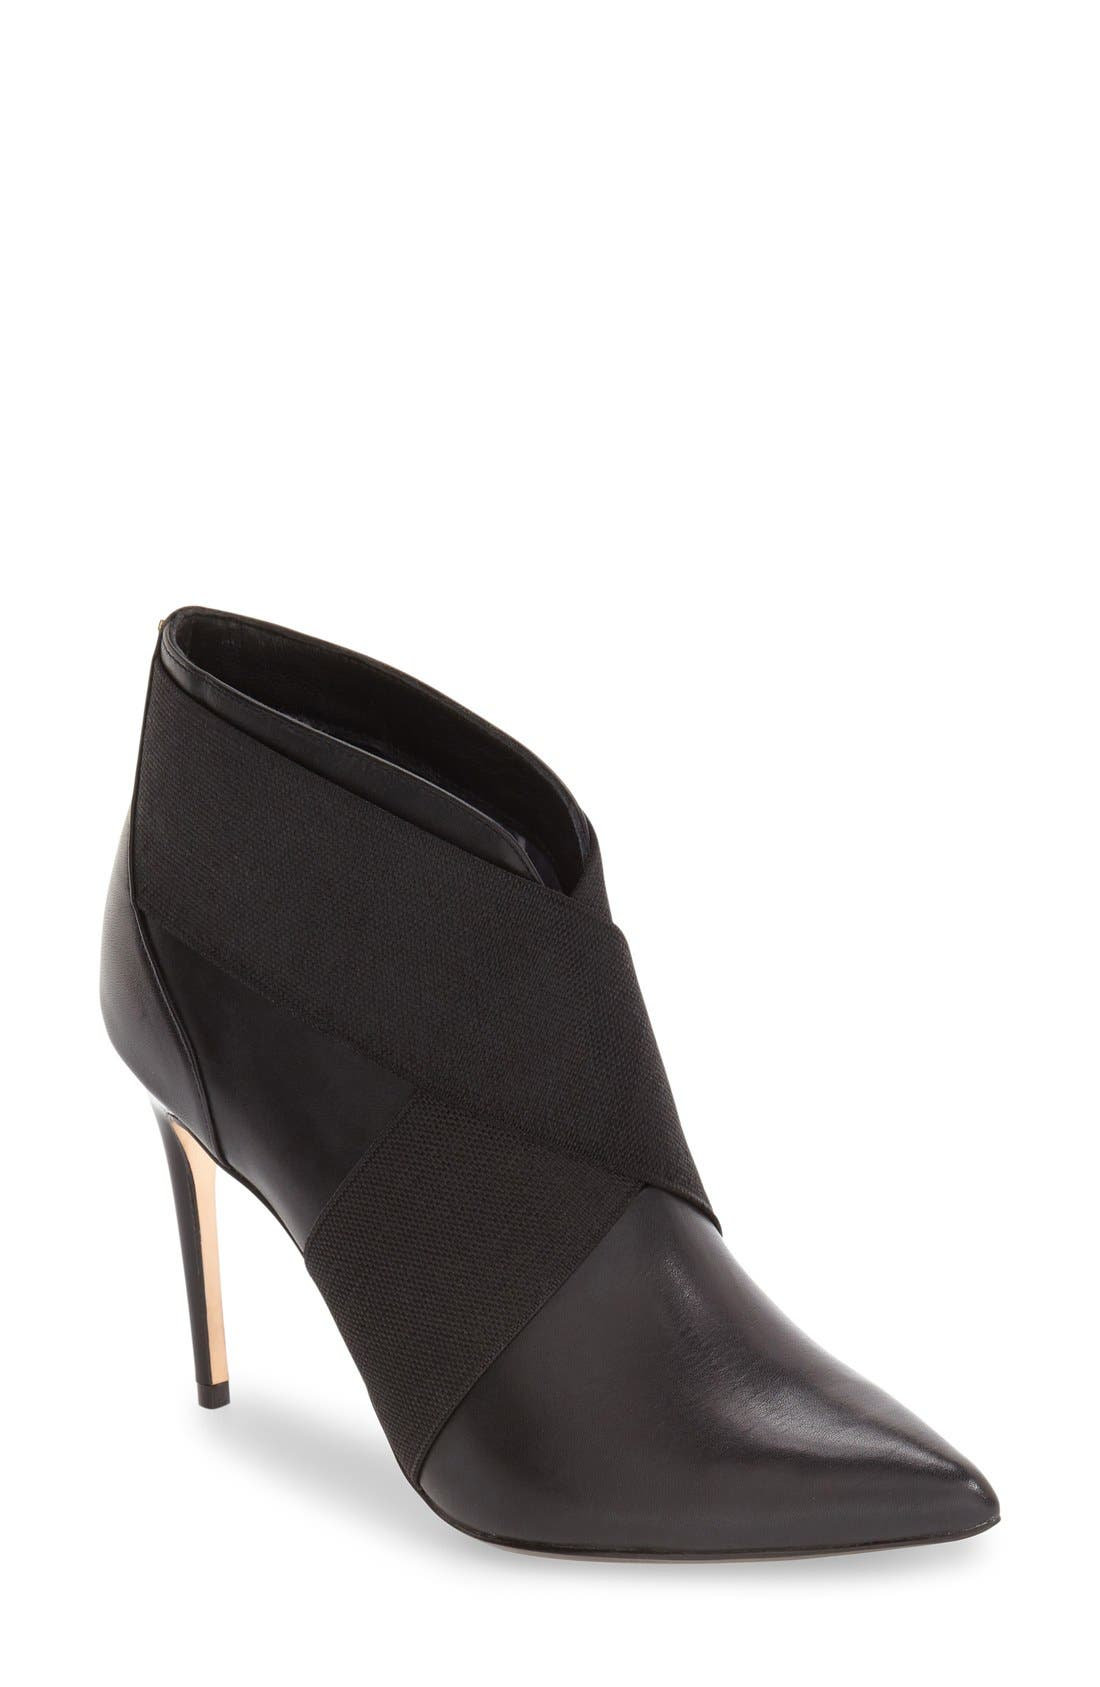 Main Image - Ted Baker London 'Lenaus' Pointy Toe Bootie (Women)